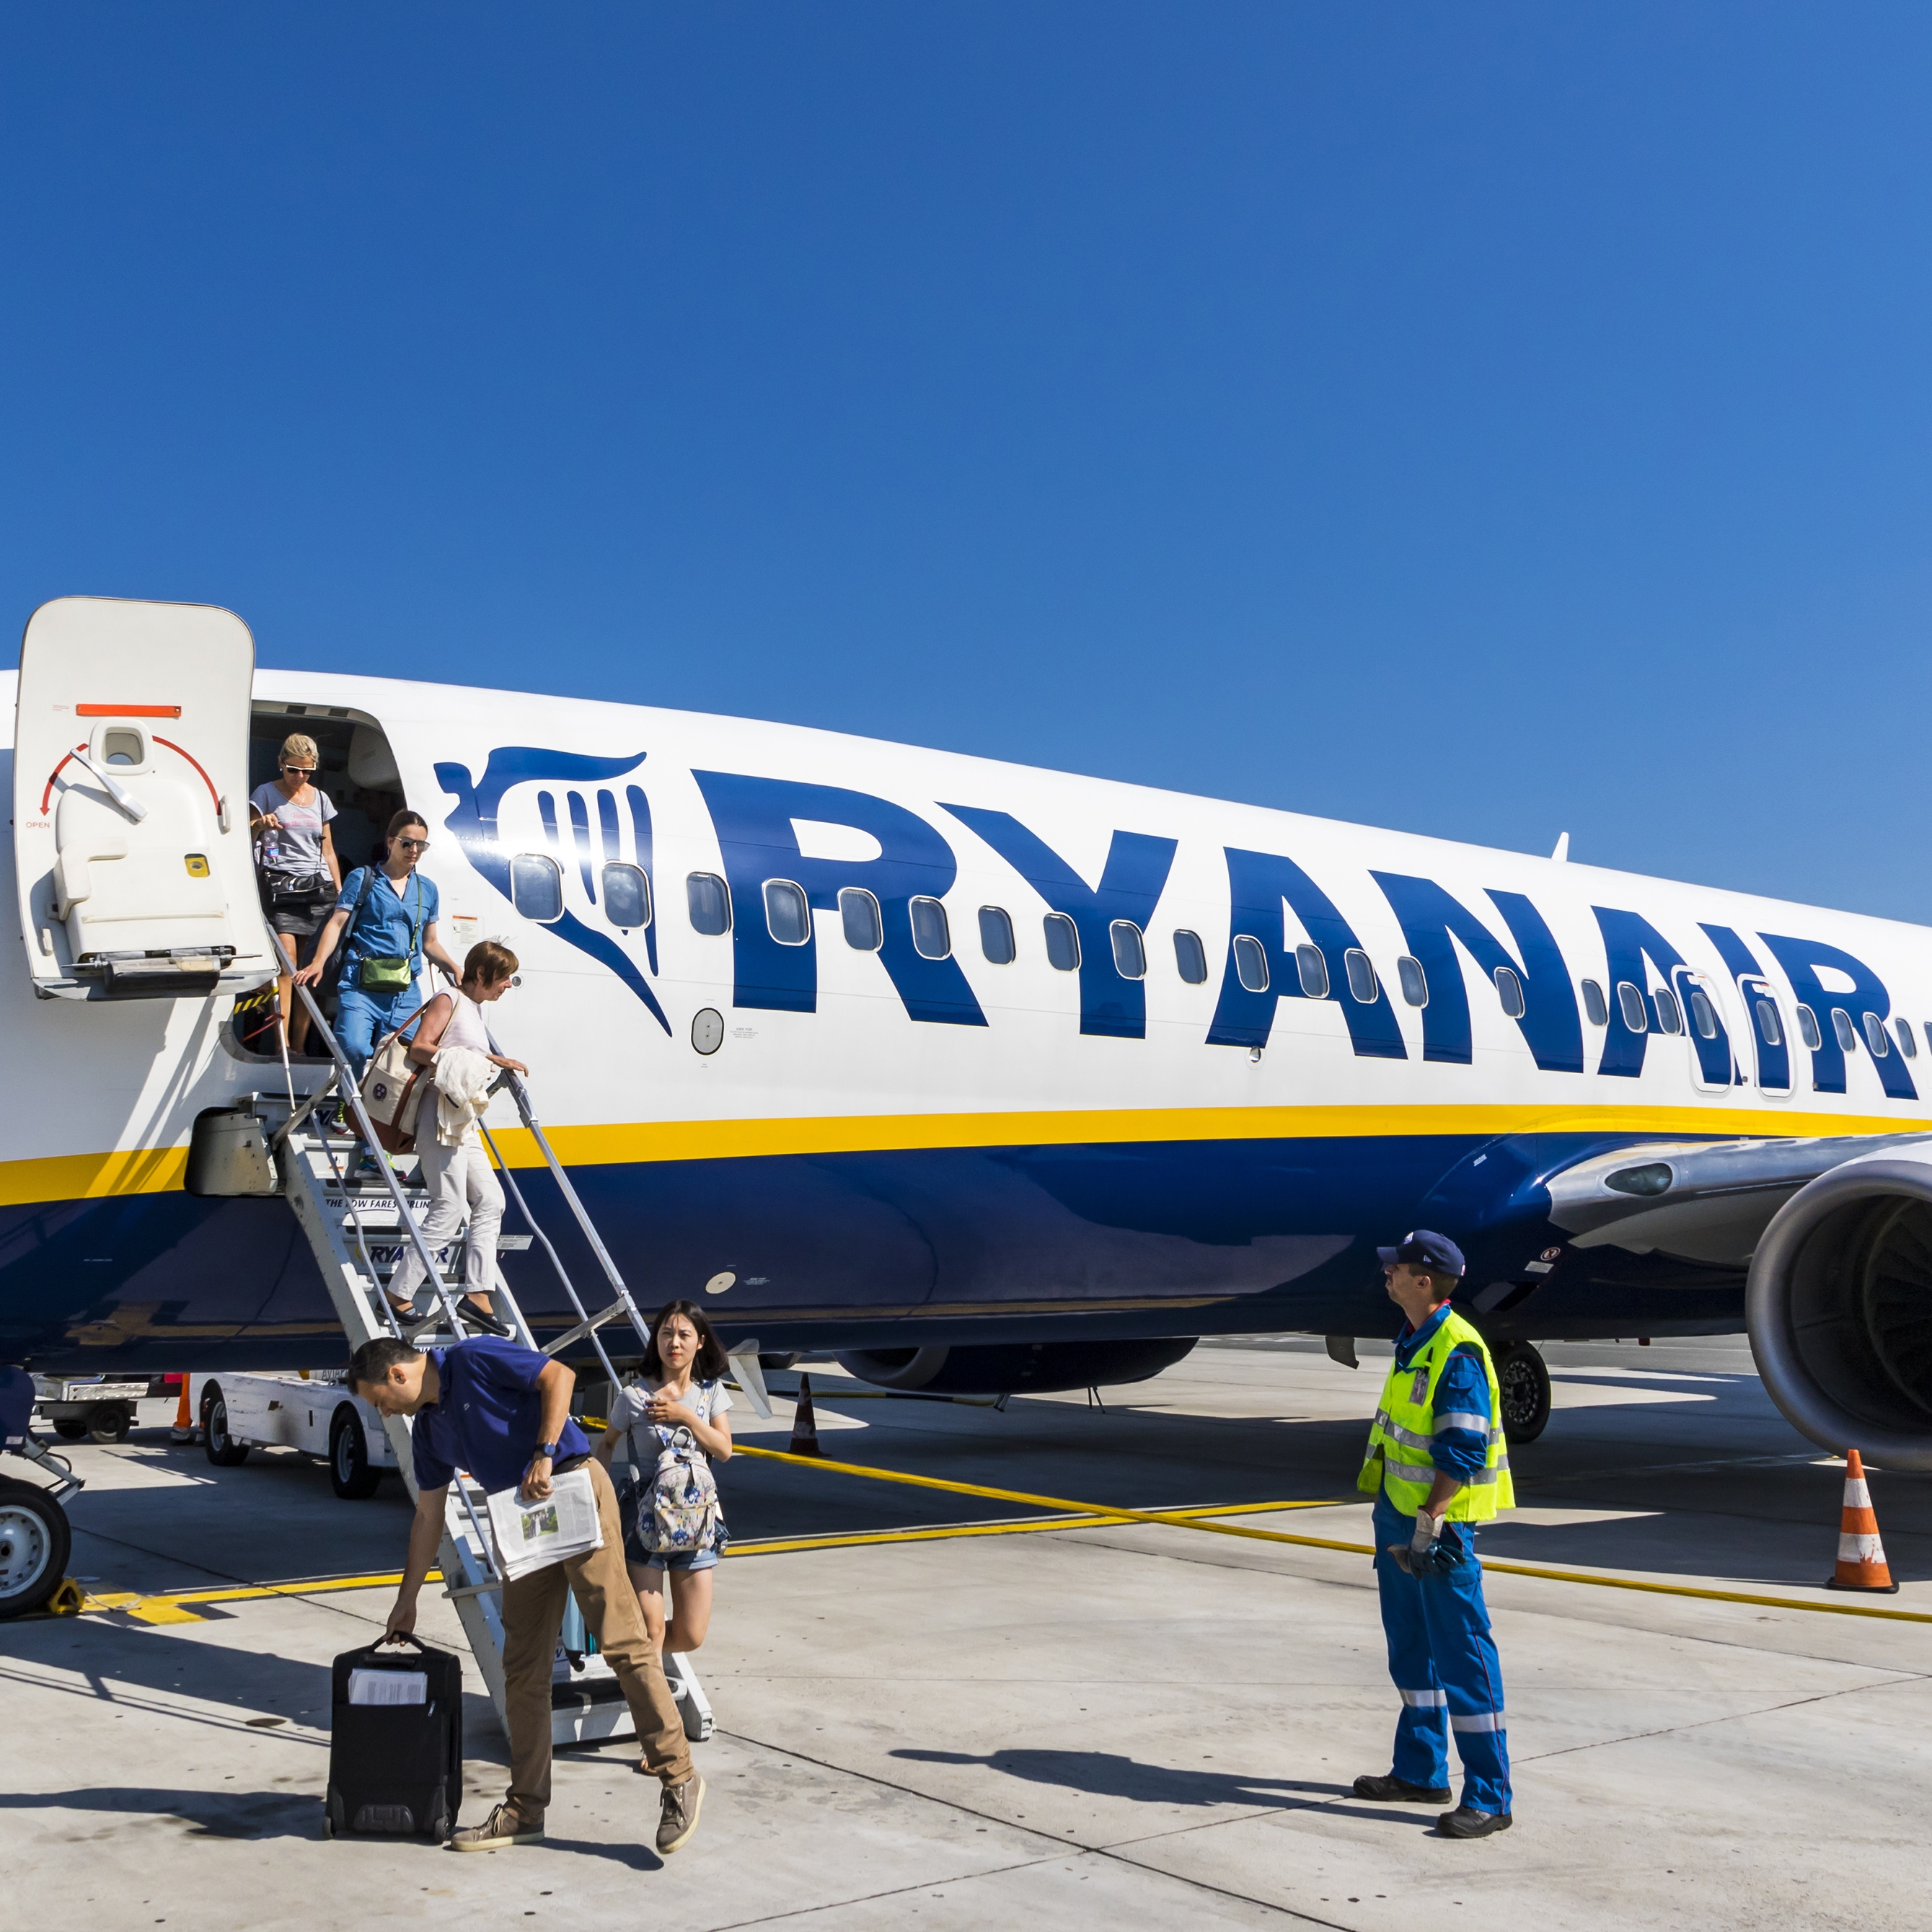 Ryanair staff WRONGLY claim chargeback is 'fraudulent'